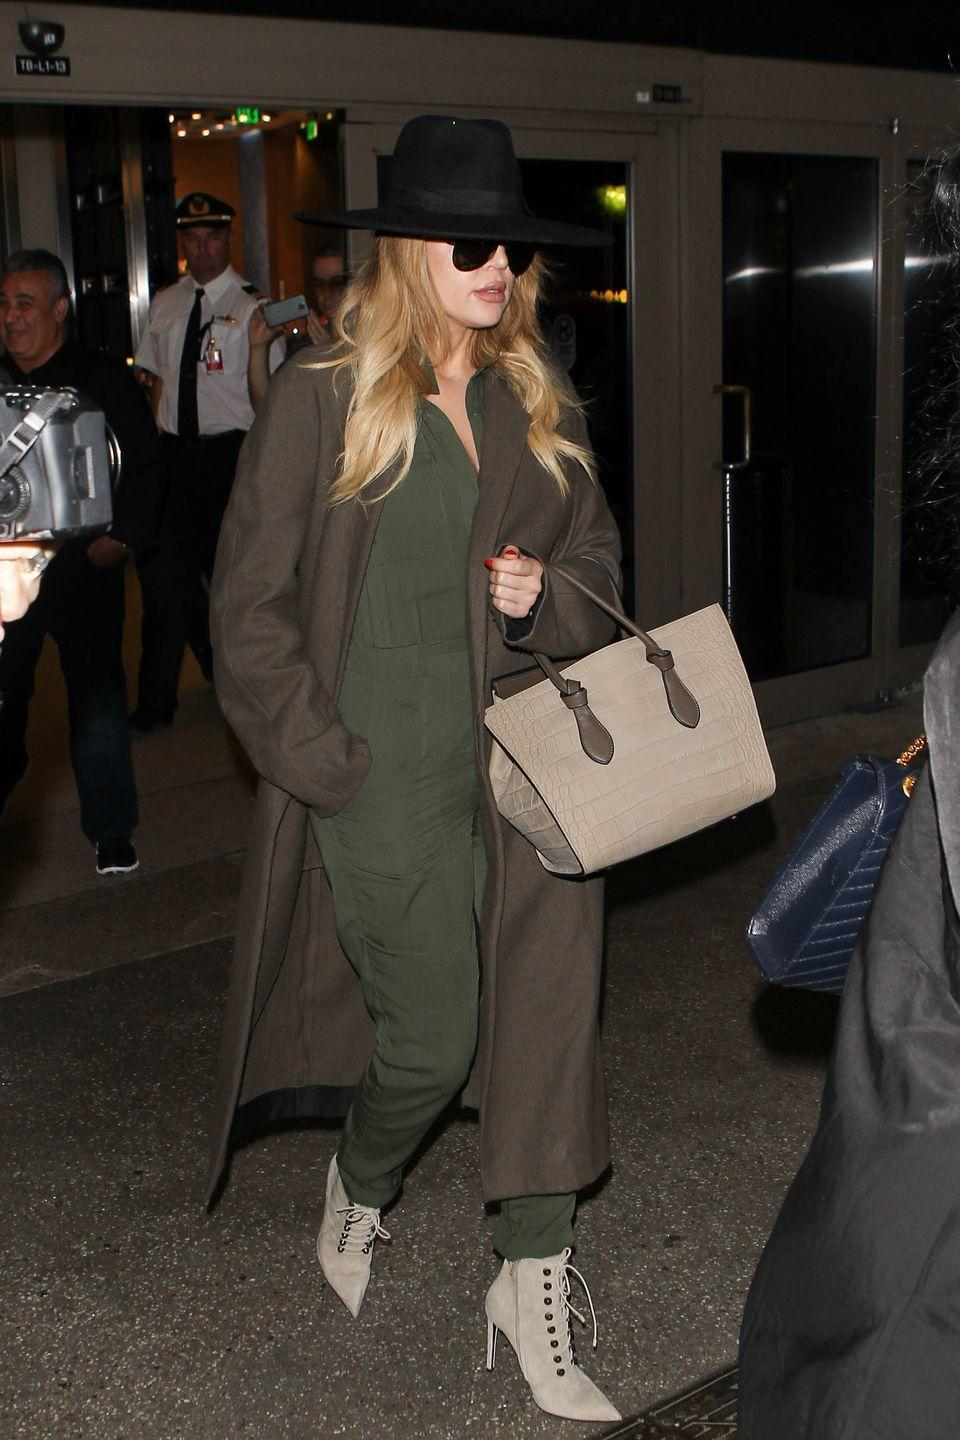 <p><strong>Khloé Kardashian, 2015</strong>: I get it: jumpsuits SEEM like practical airplane wear, very <em>Top Gun</em> and casual chic! But then you have to pee and you're topless in an 2x2 plane bathroom or gross airport stall with your sleeves around your ankles and...never again.</p>